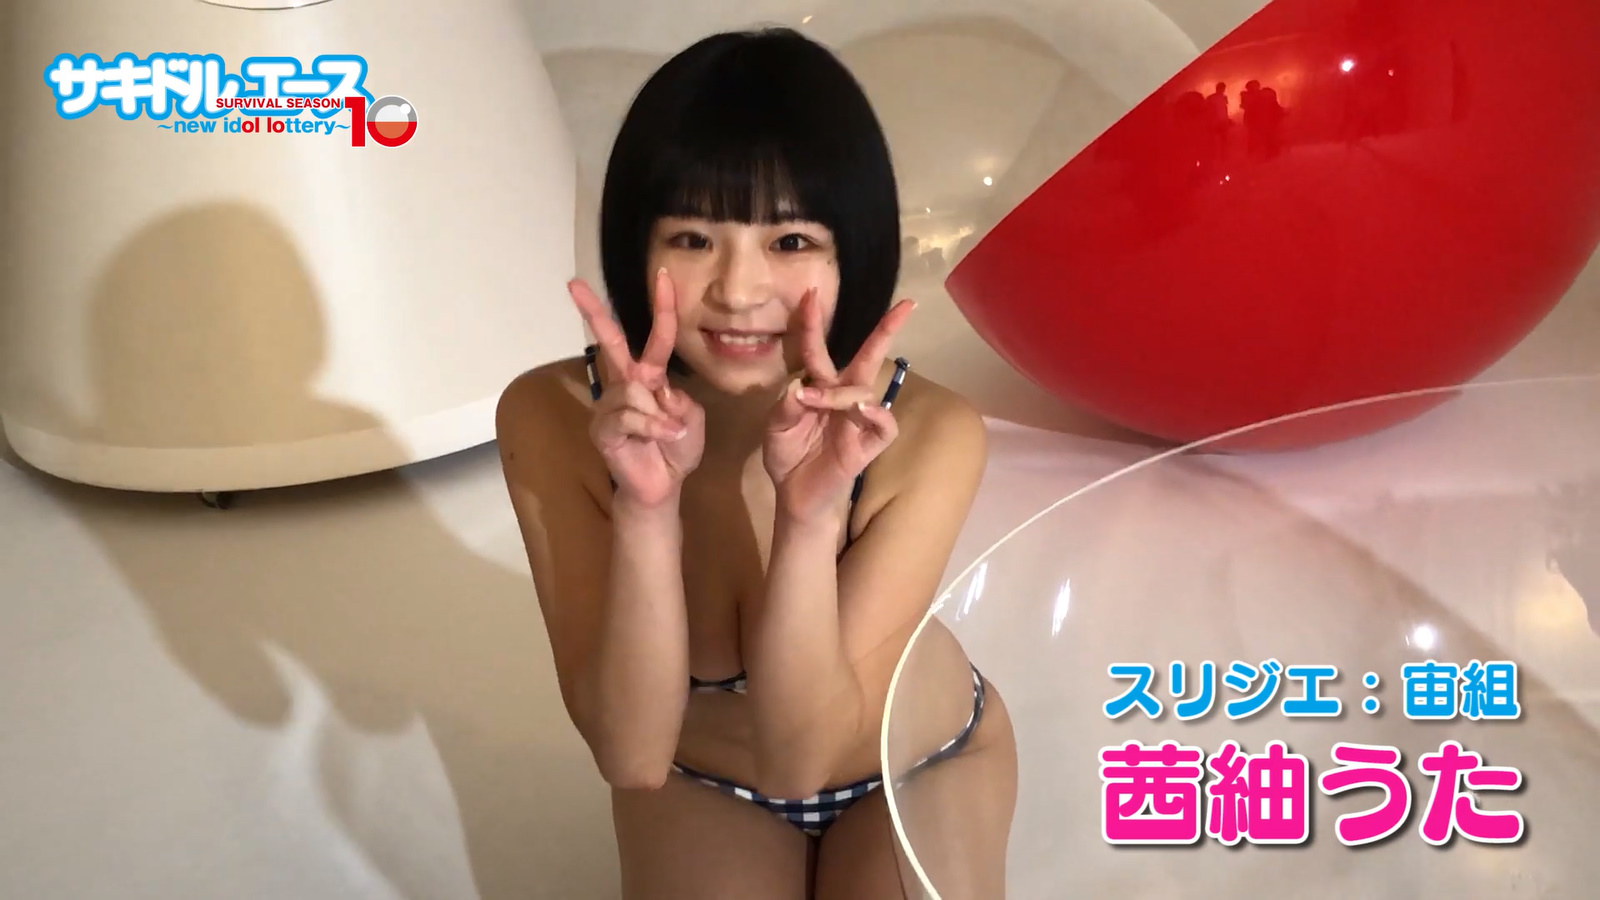 Sakidol Ace 10 Introduction Movie Capture of Swimsuit060